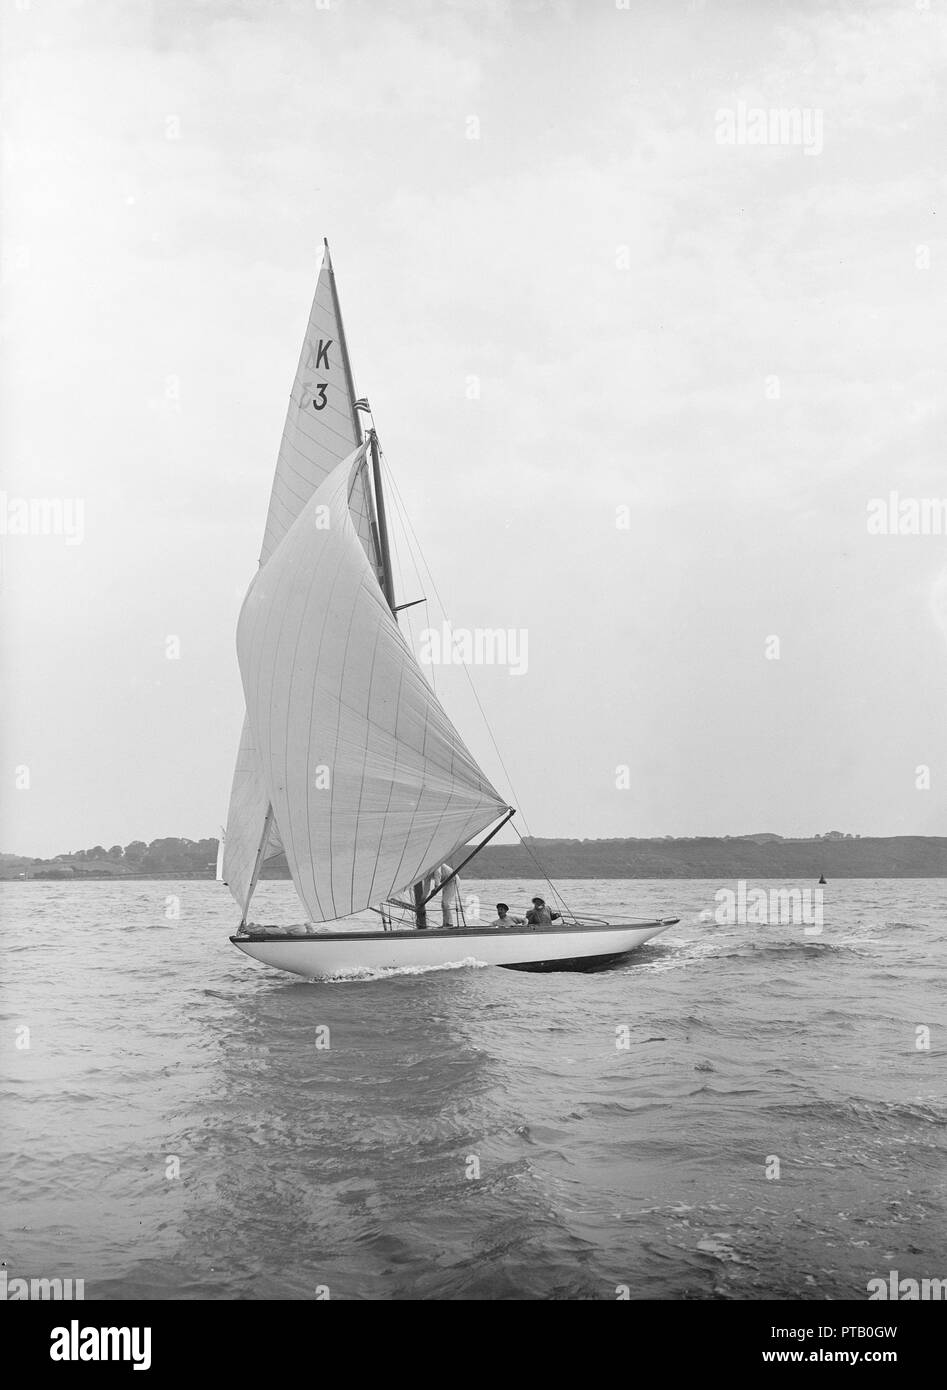 The 7 Metre 'Ancora' (K3) sailing under spinnaker, 1913. 'Ancora' went on to win gold medal in the 1920 Antwerp Olympics. - Stock Image